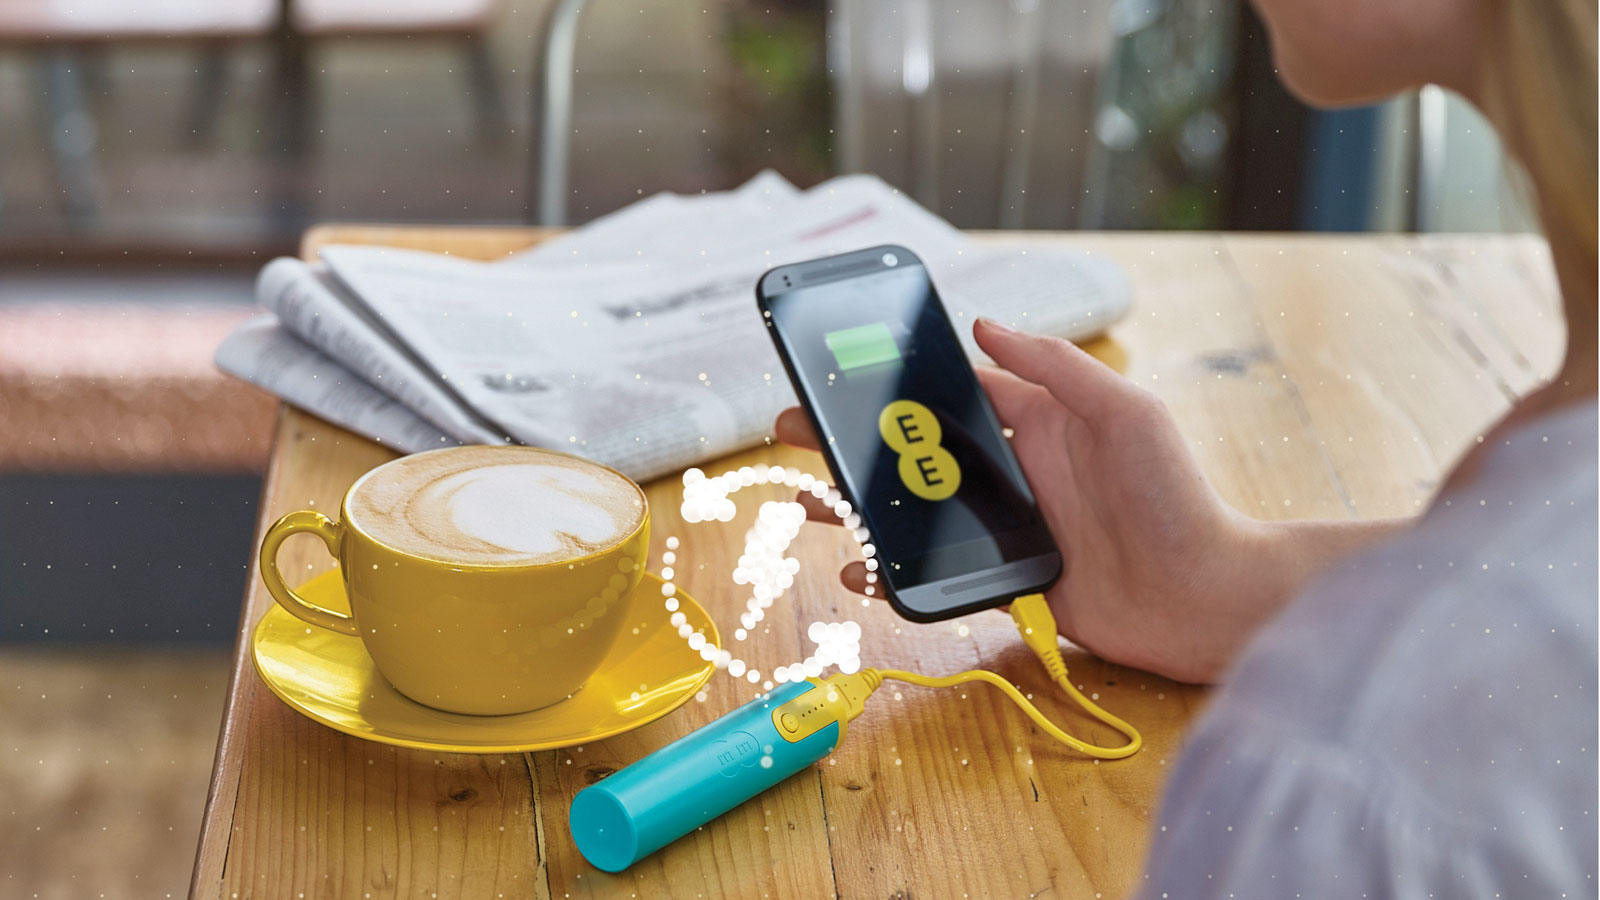 ee power bar recall fire